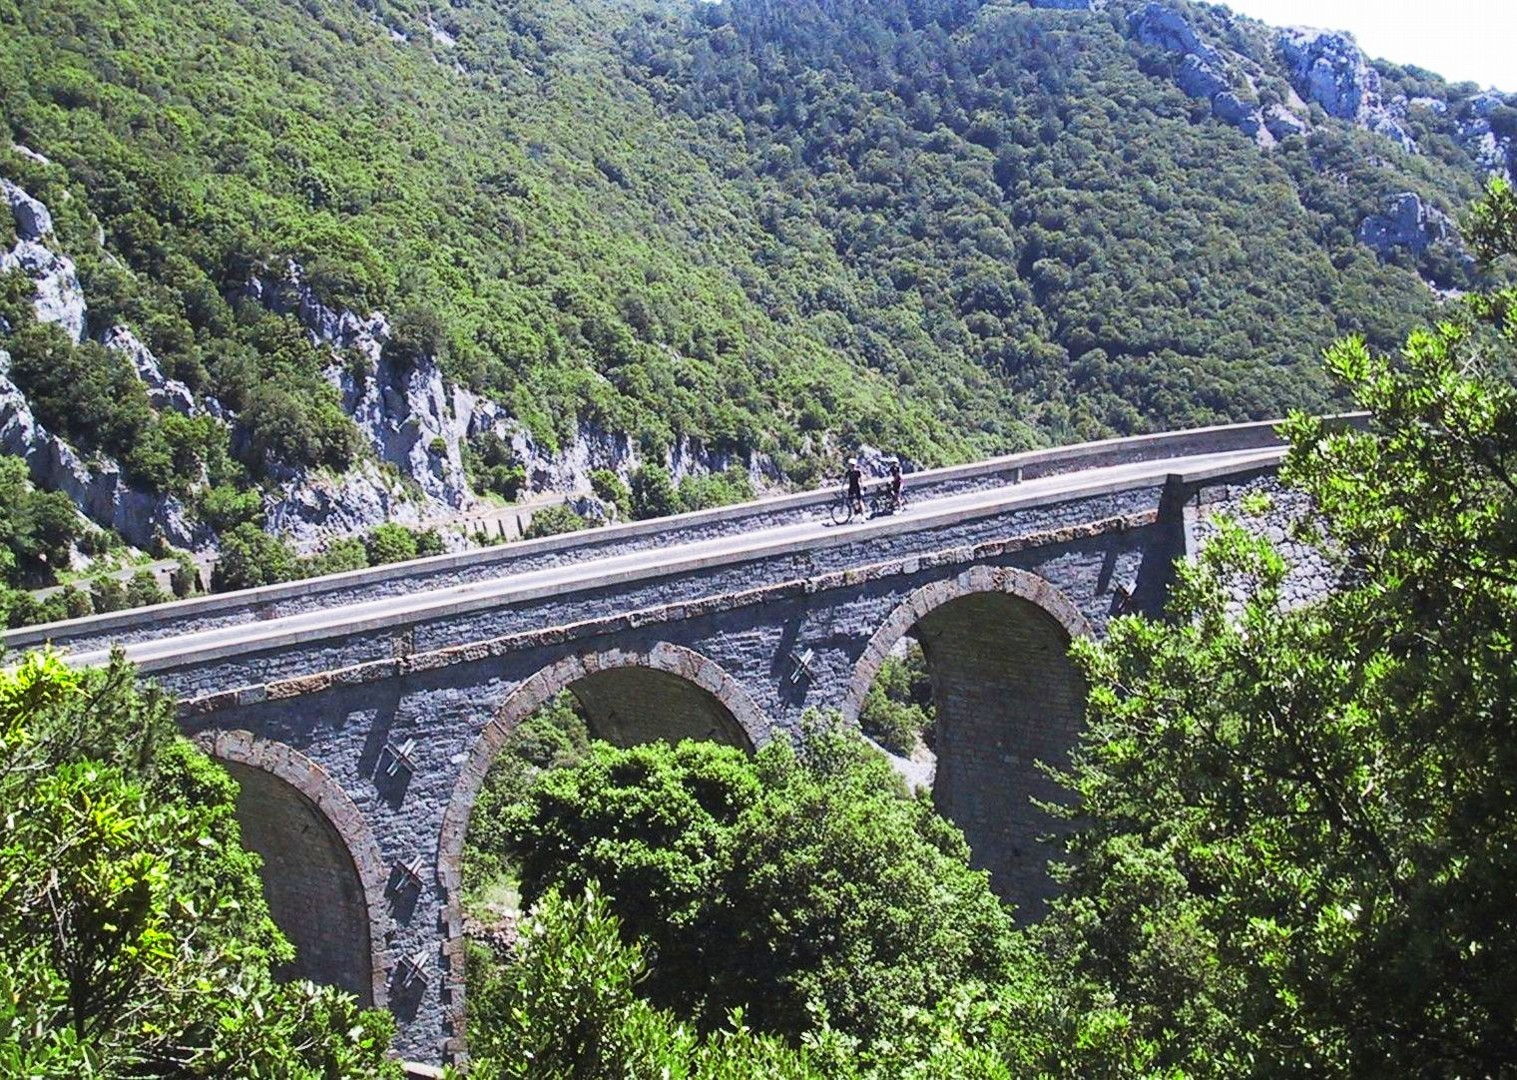 france-pyrenees-group-cycling-holiday.jpg - France - Pyrenees Fitness Week - Guided Road Cycling Holiday (Grade 3-4) - Road Cycling